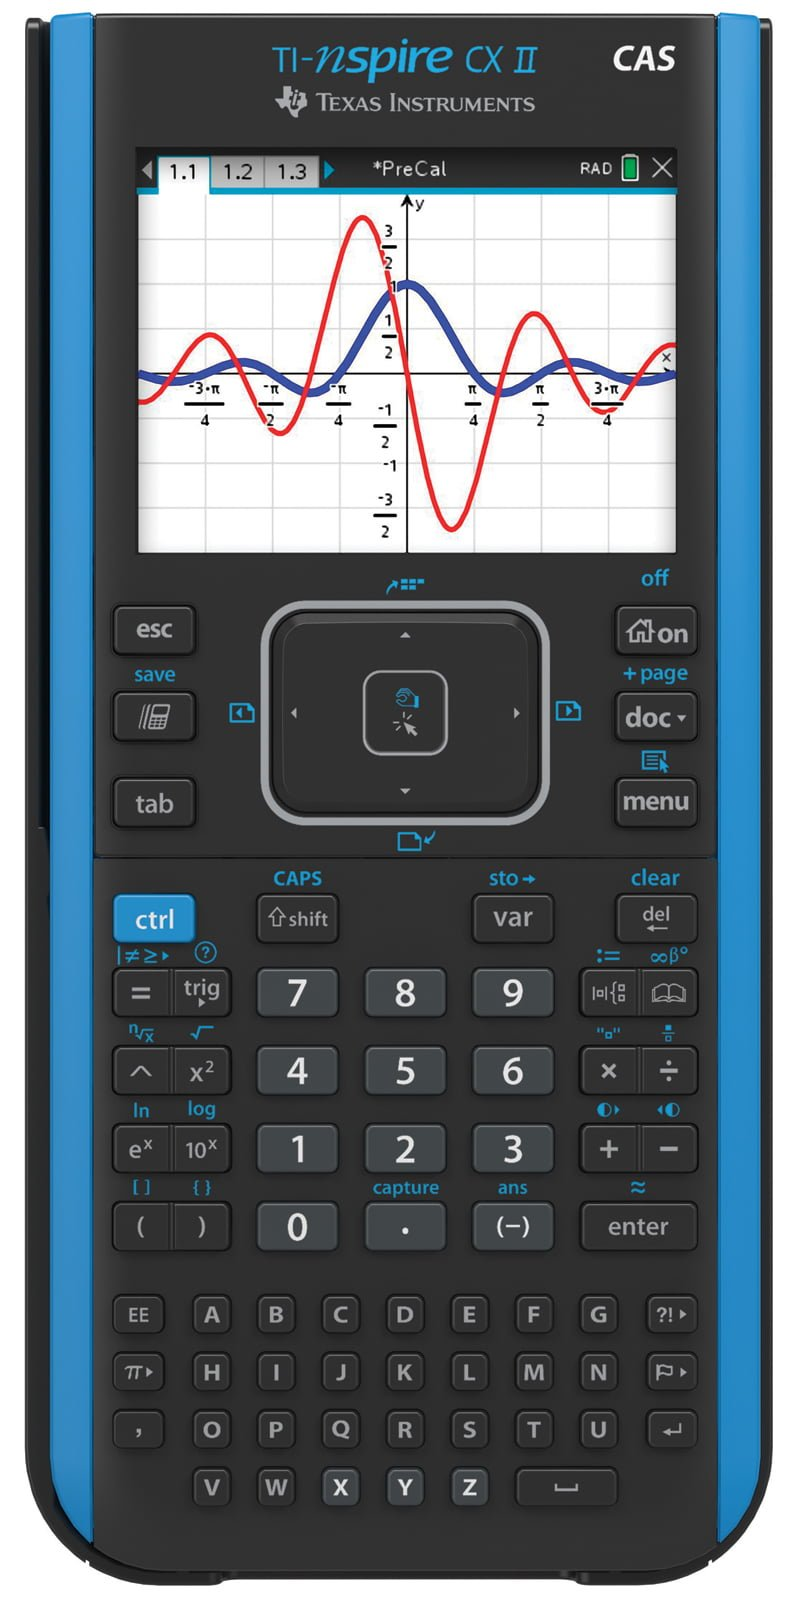 Texas Instruments TI-Nspire CX II CAS Handheld Graphing Calculator